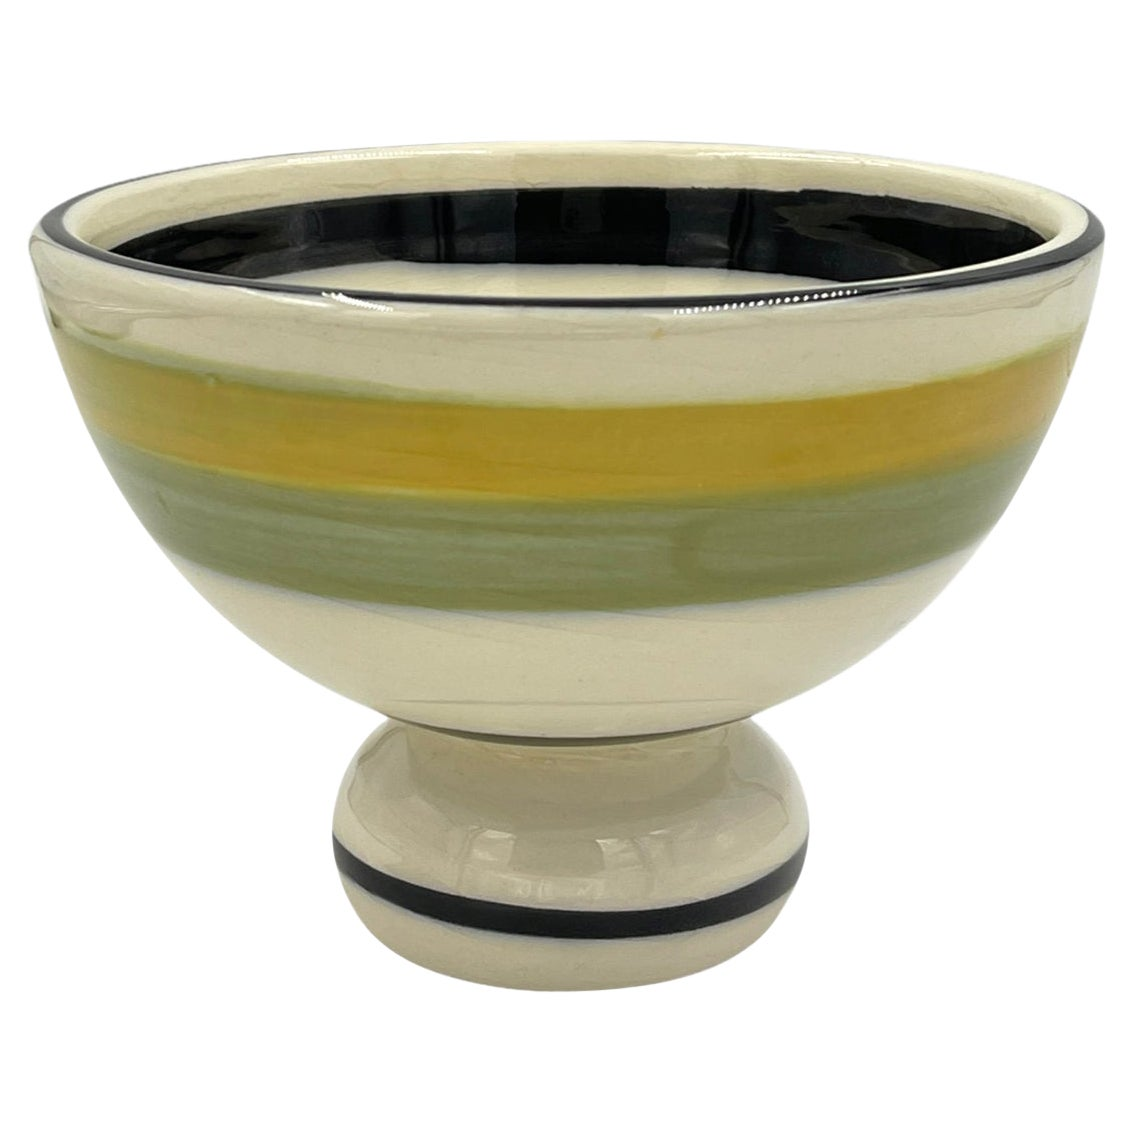 Peter Shire Expo Bowl, 1997